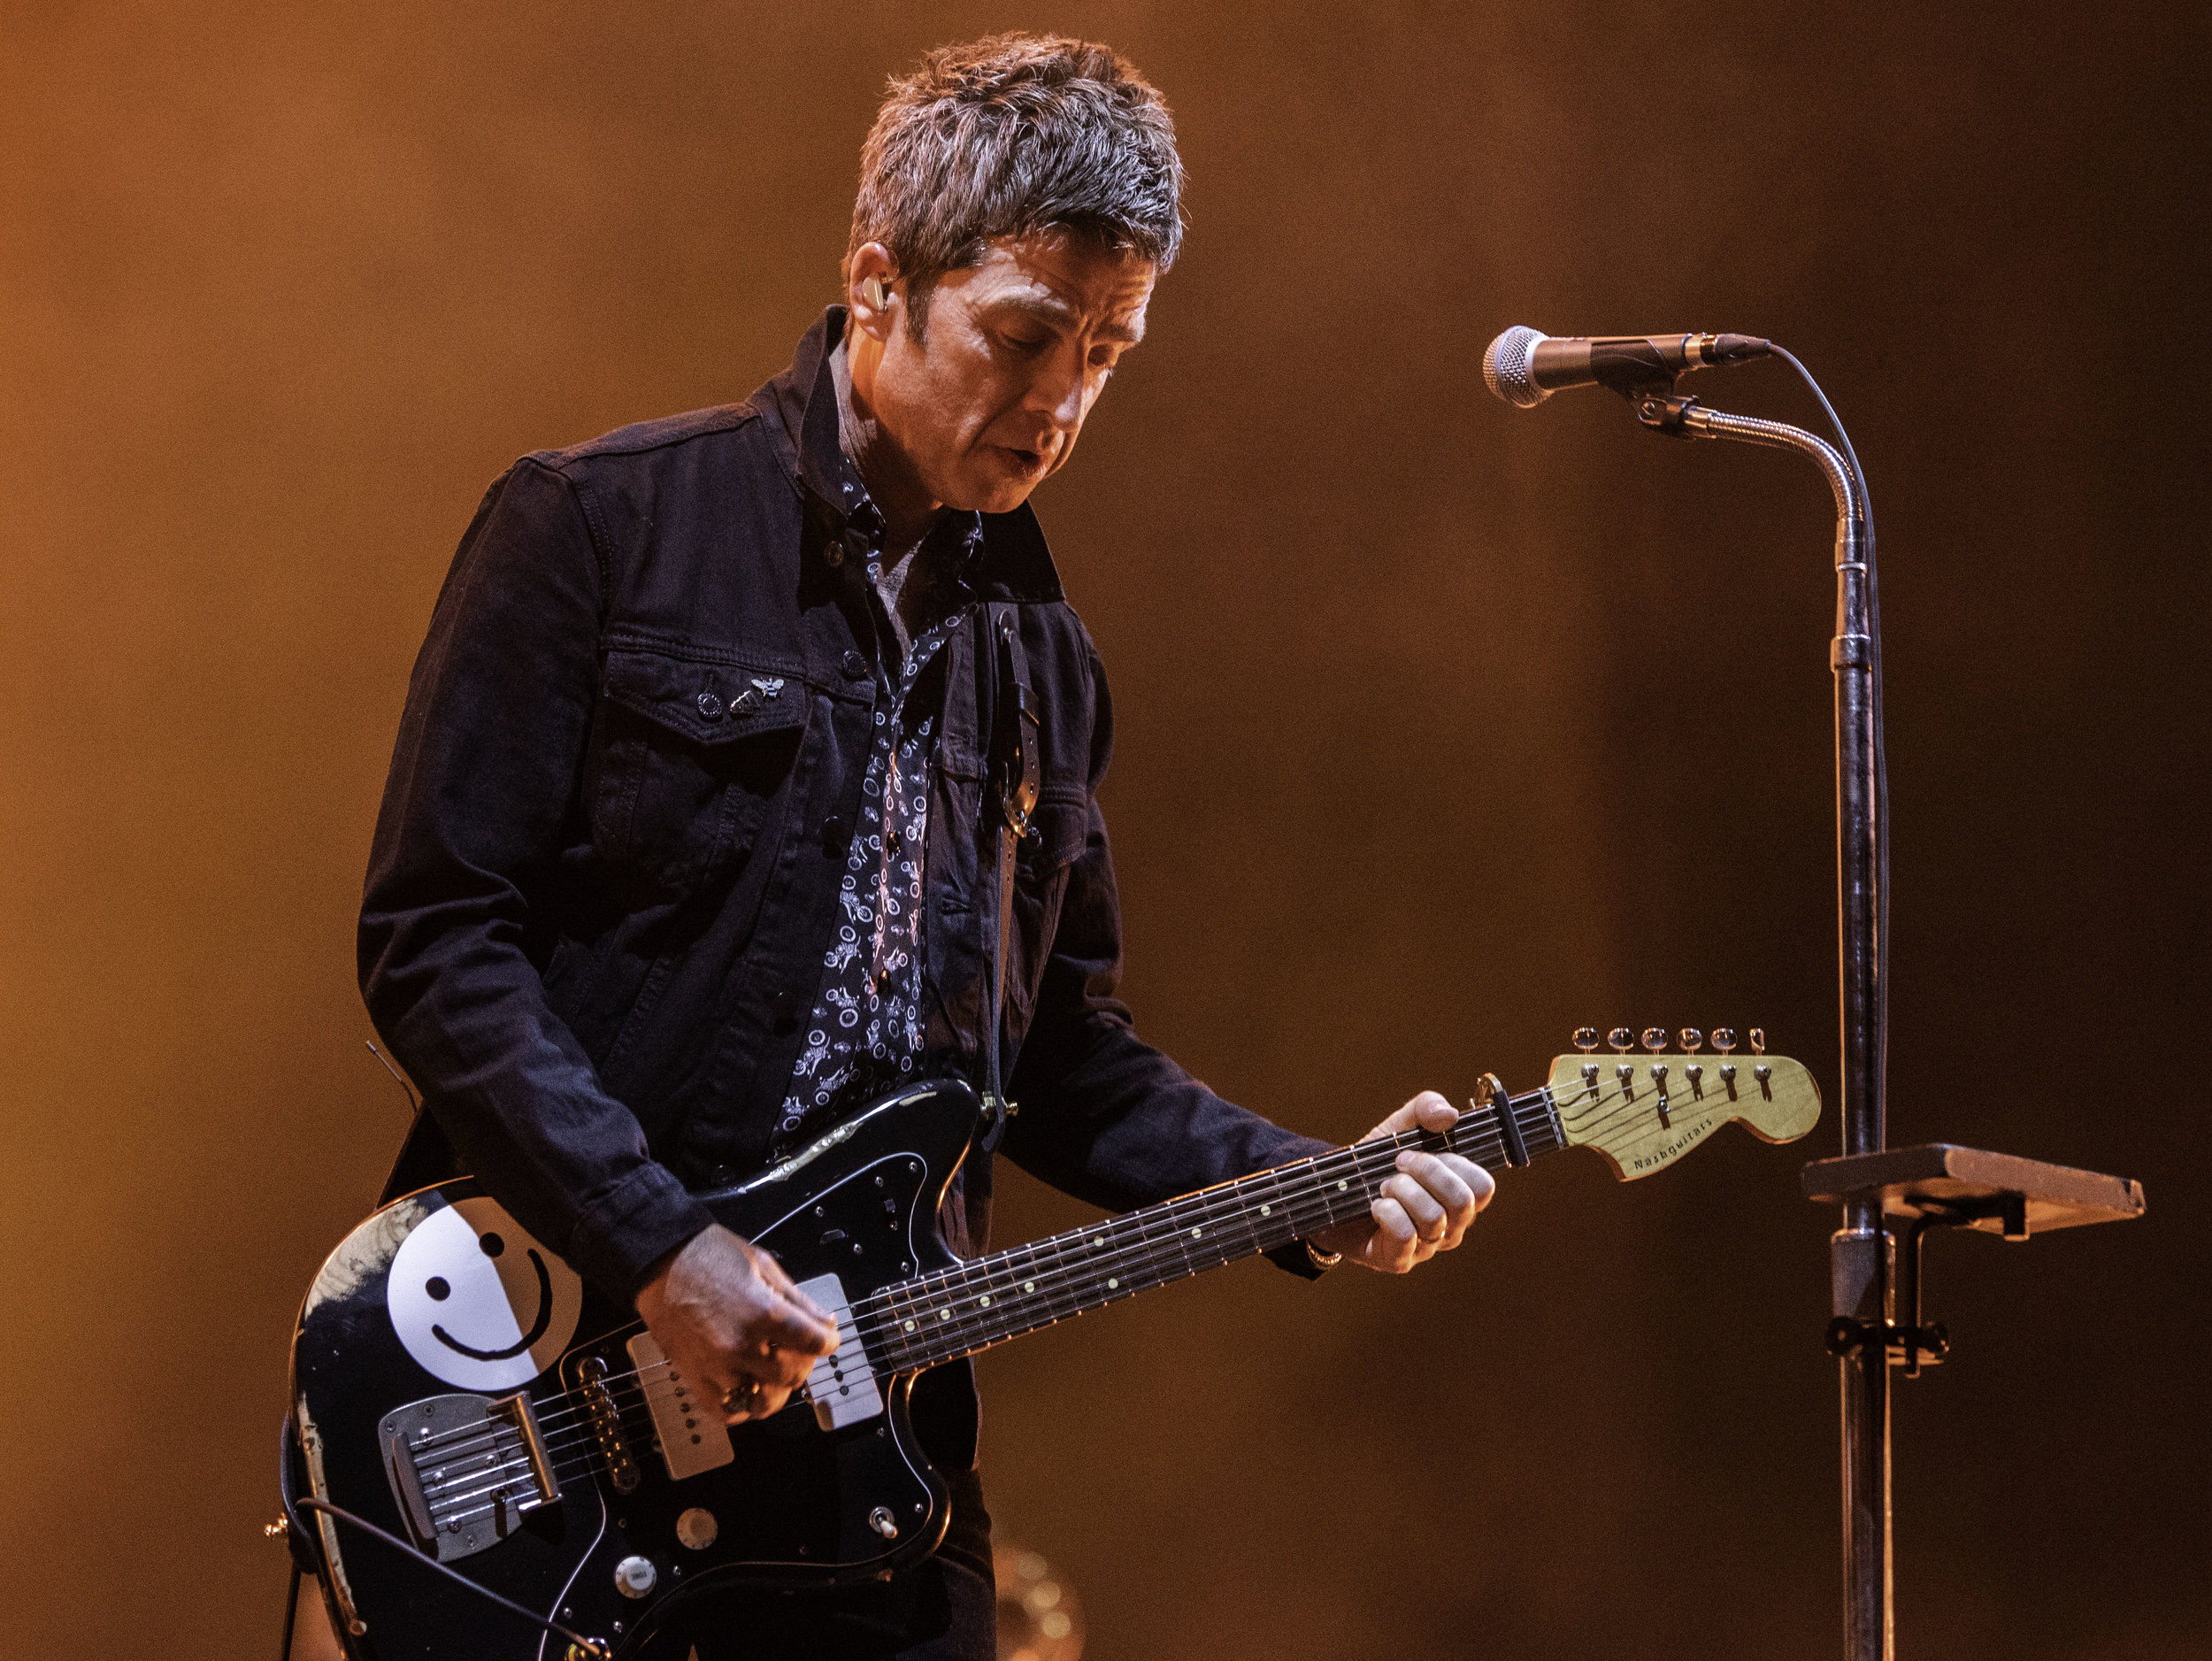 05  - Noel Gallagher's High Flying Birds kicking off their UK Summer Tour to packout Edinburgh Playhouse on a Tuesday evening - 7th May 2019 - Picture by - Calum Buchan Photography.jpg